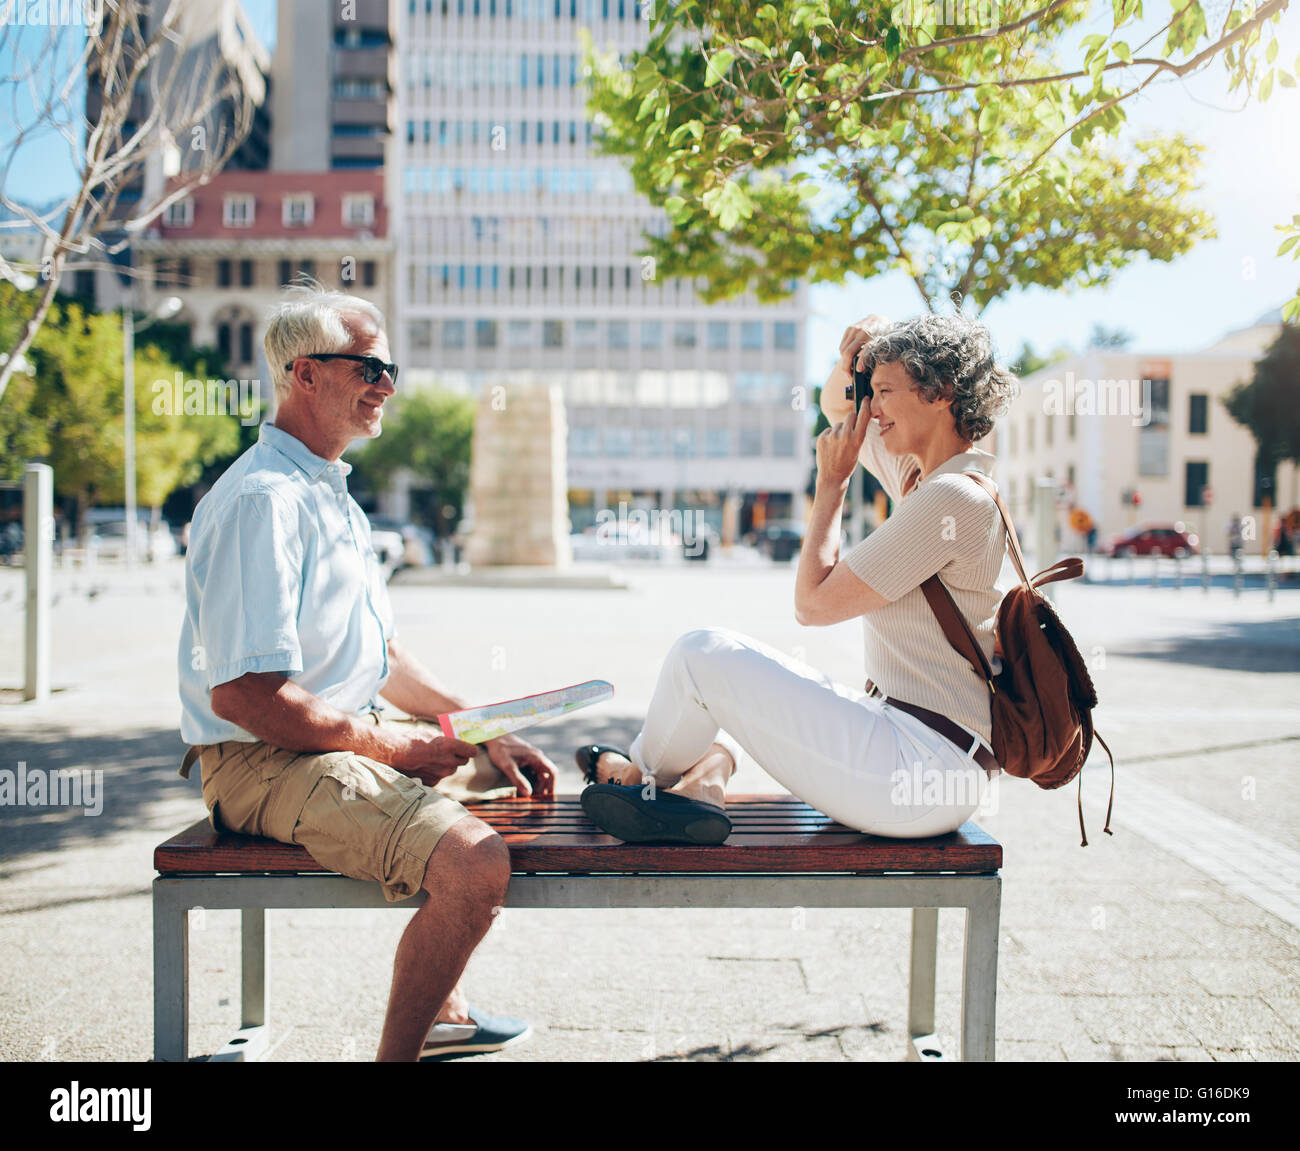 Side view of mature man sitting on bench and woman taking his photos with digital camera. Senior couple having fun - Stock Image